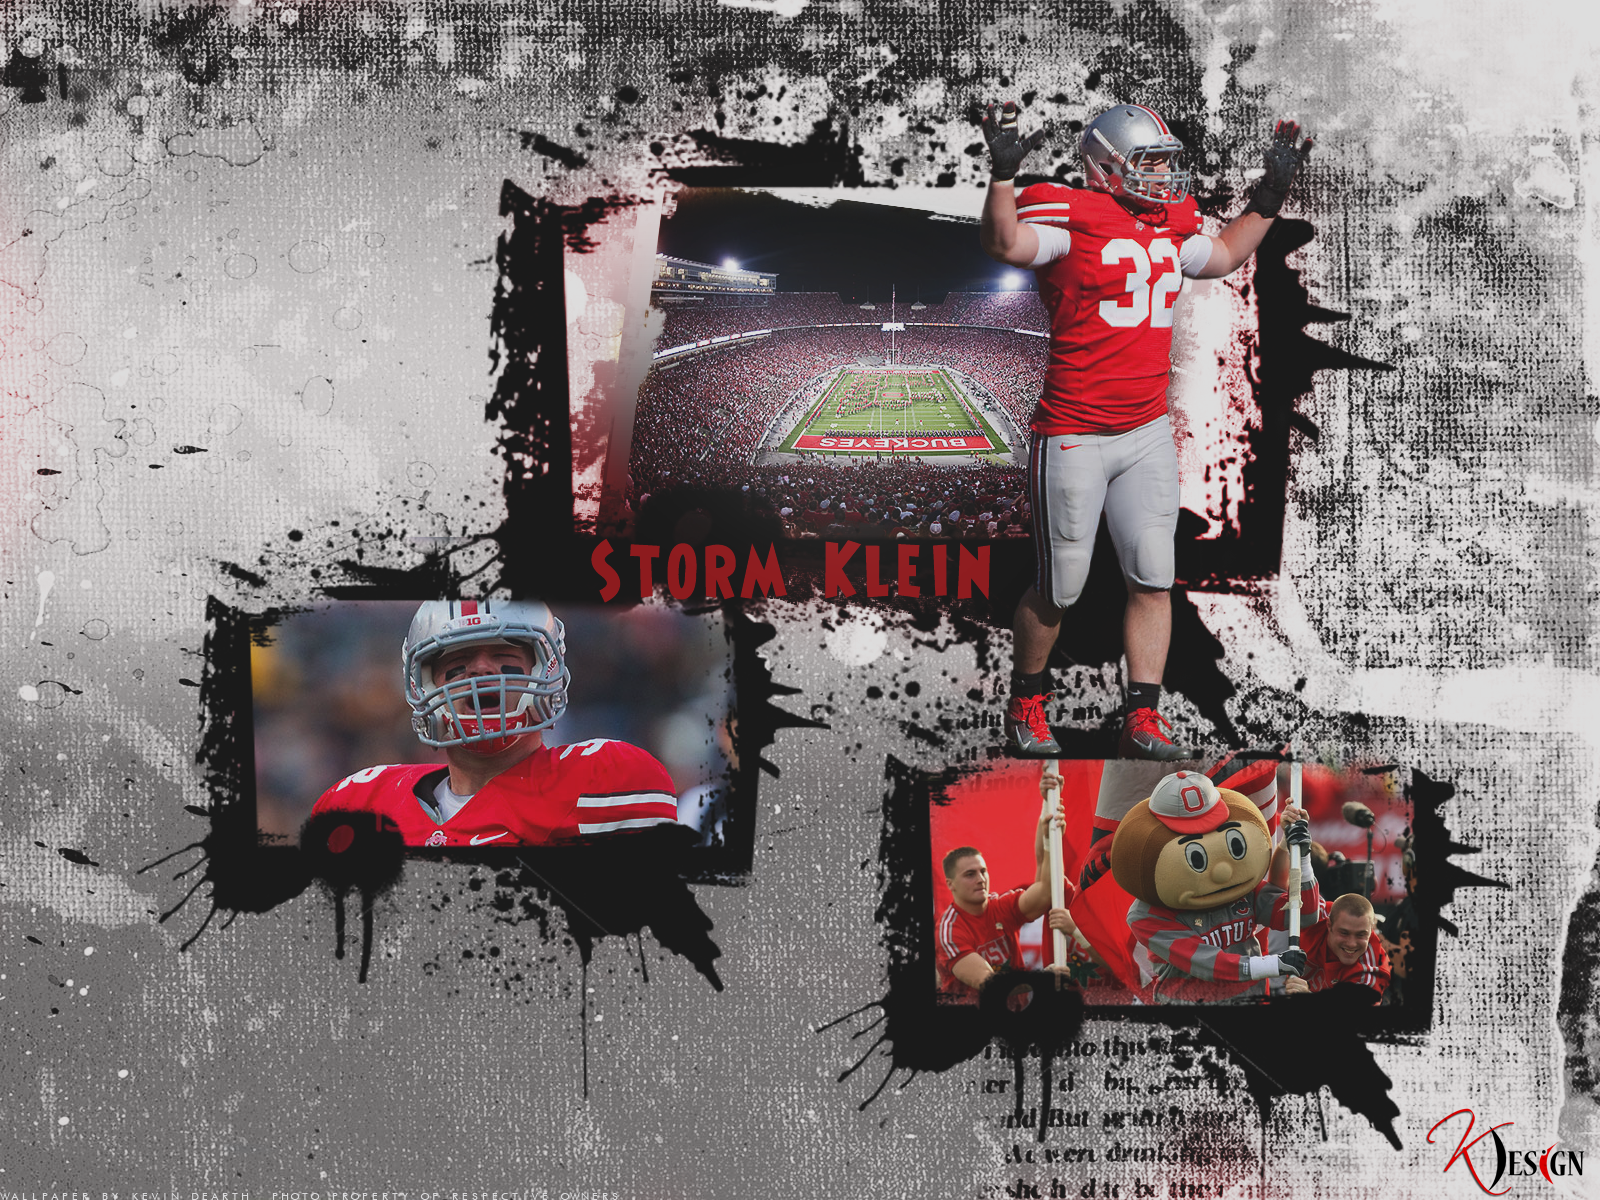 Storm Klein Wallpaper by KevinsGraphics